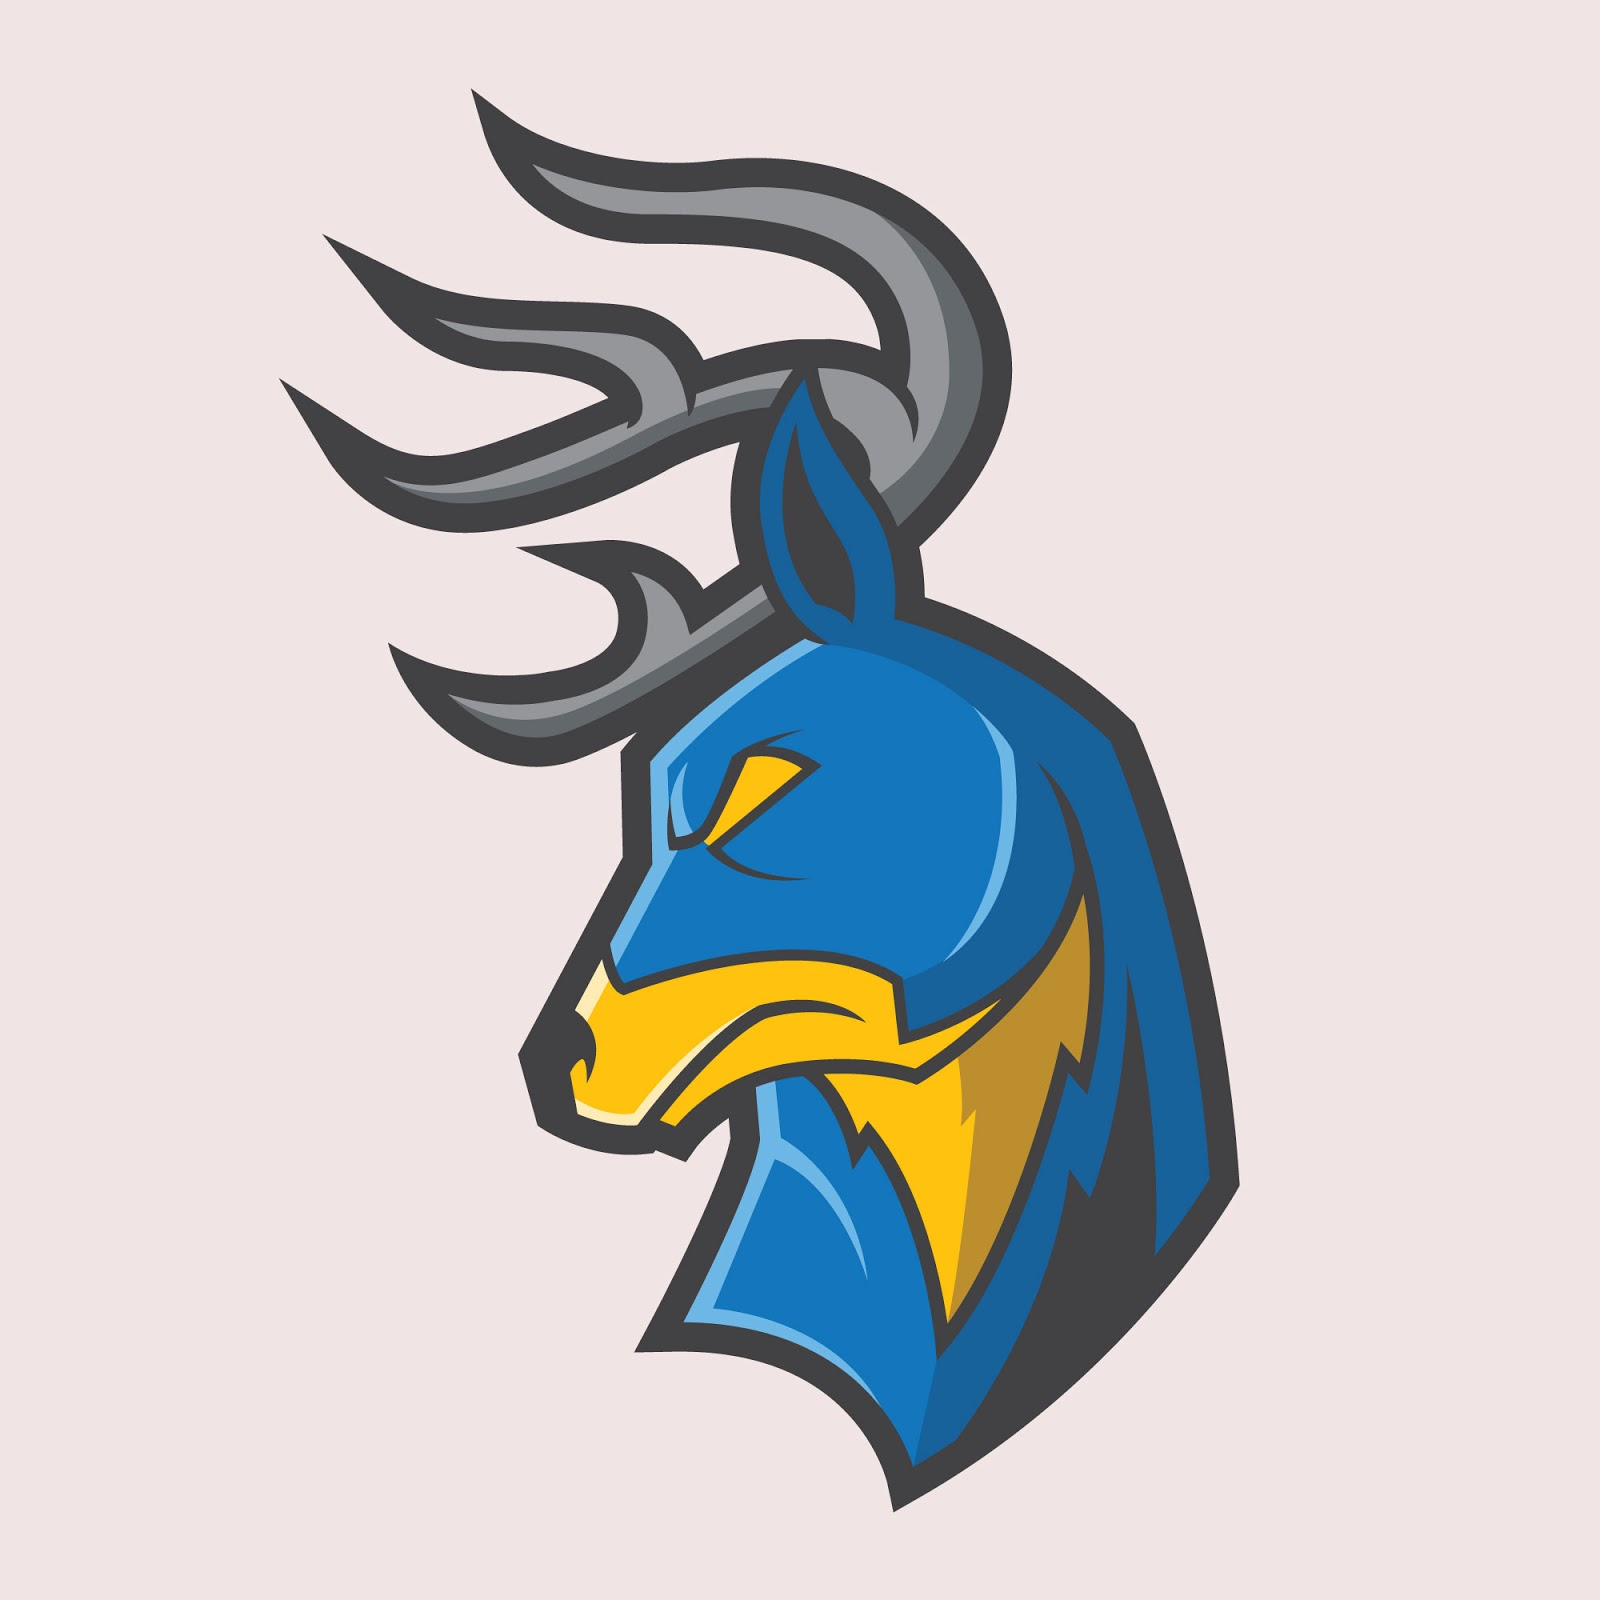 Antler Mascot Logo Free Download Vector CDR, AI, EPS and PNG Formats